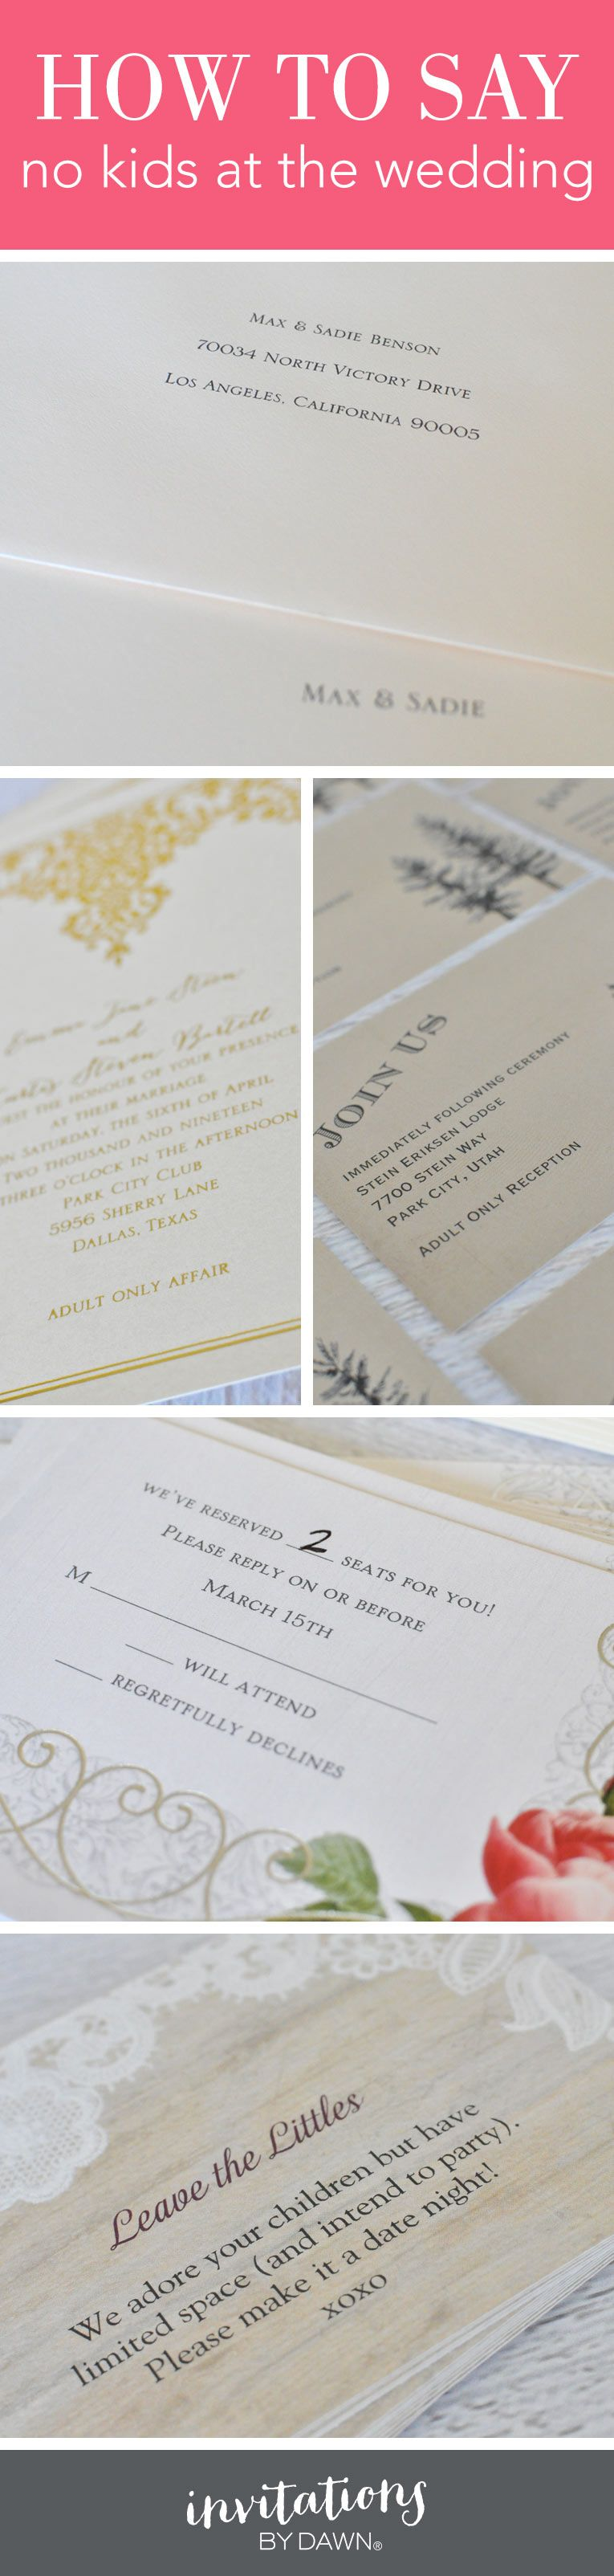 sister wedding invitation card wordings%0A   ways to make it clear kids aren u    t invited to your wedding